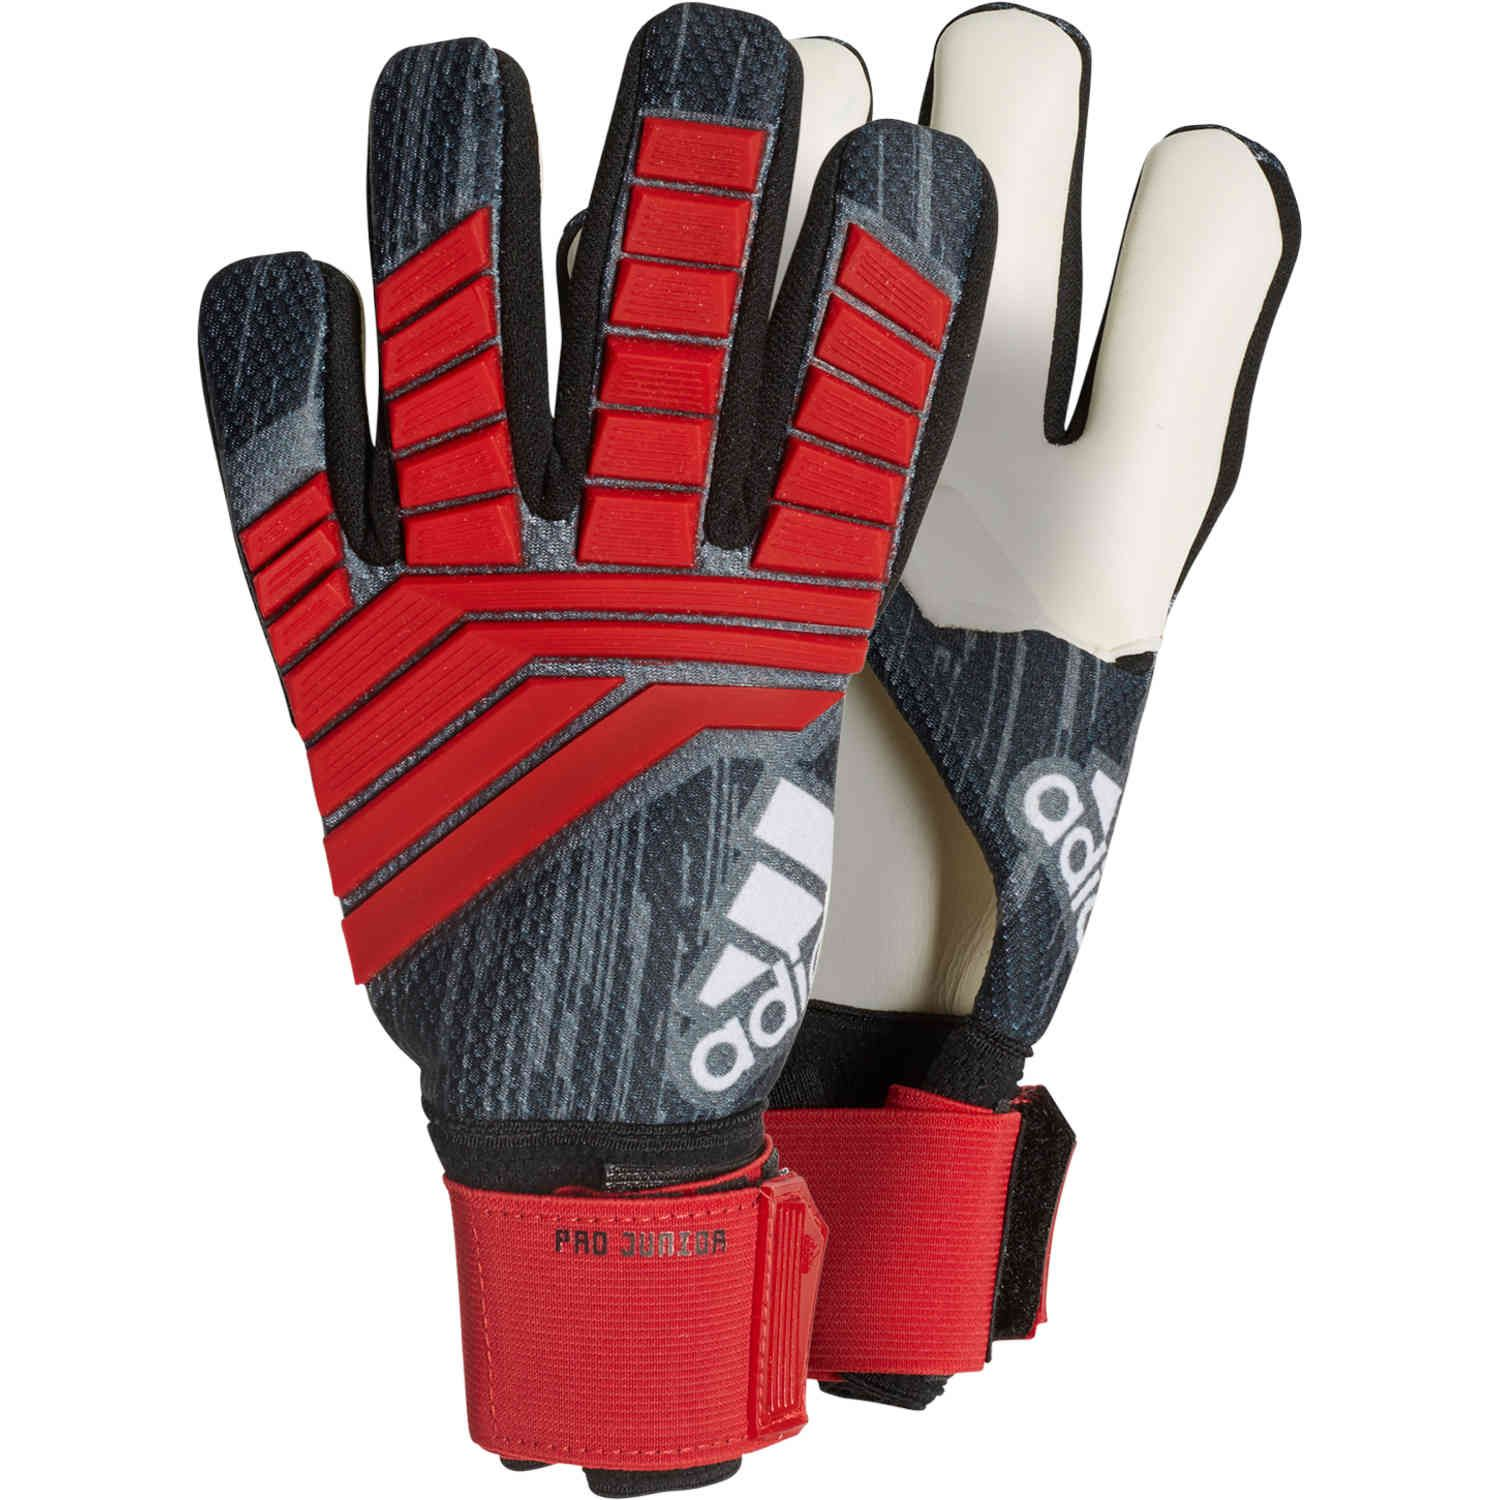 7f71d6085 Youth adidas Predator Pro Keeper Gloves. Get these from SoccerPro.